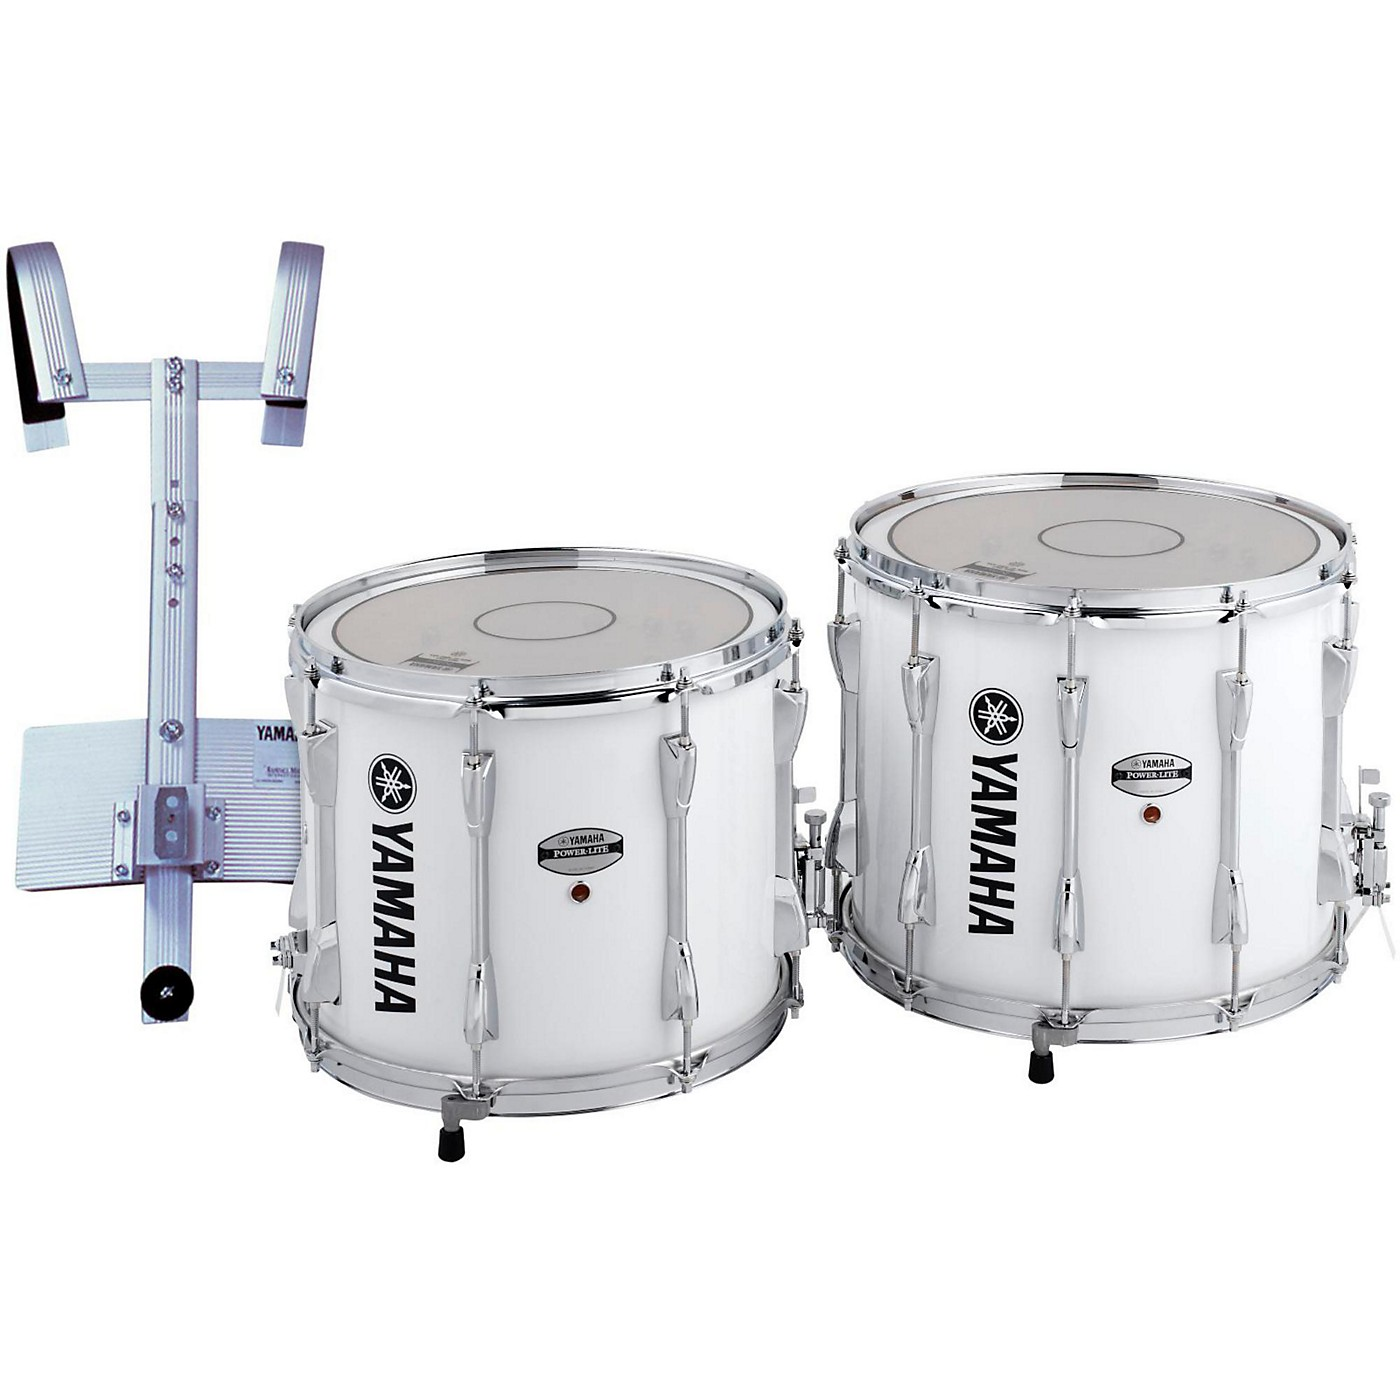 Yamaha Power-Lite Marching Snare Drum with Carrier thumbnail